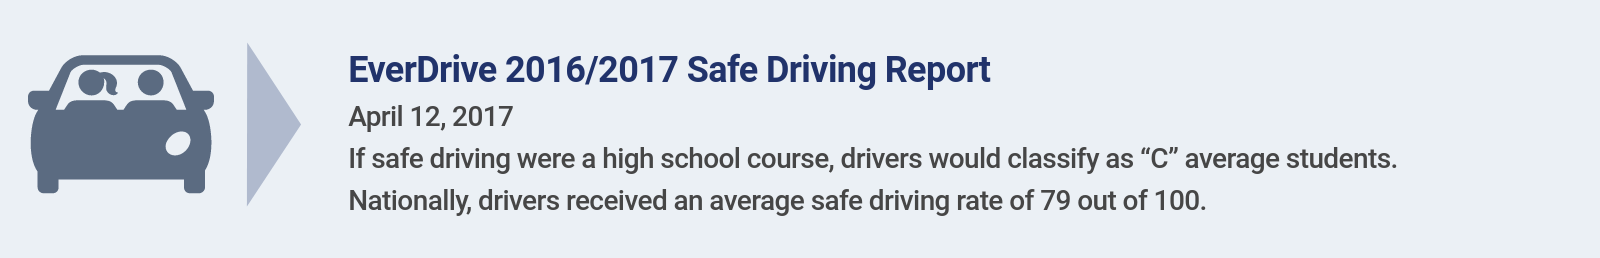 EverDrive Safe Driving Report